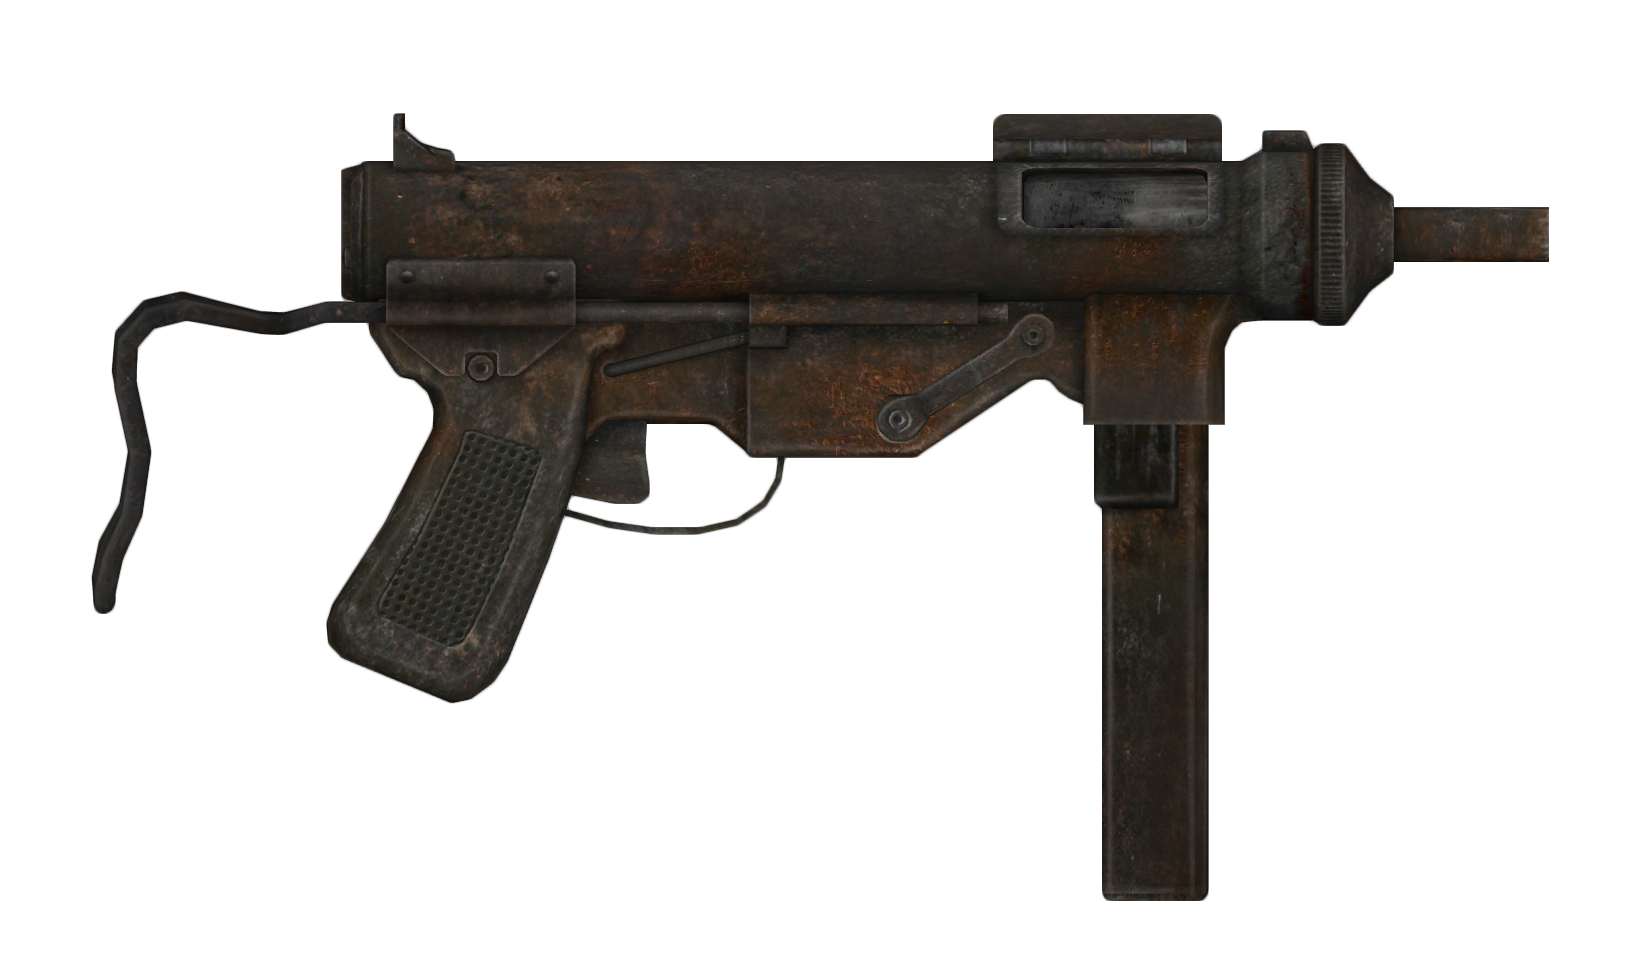 9mm_SMG_%28Fallout_New_Vegas%29.png